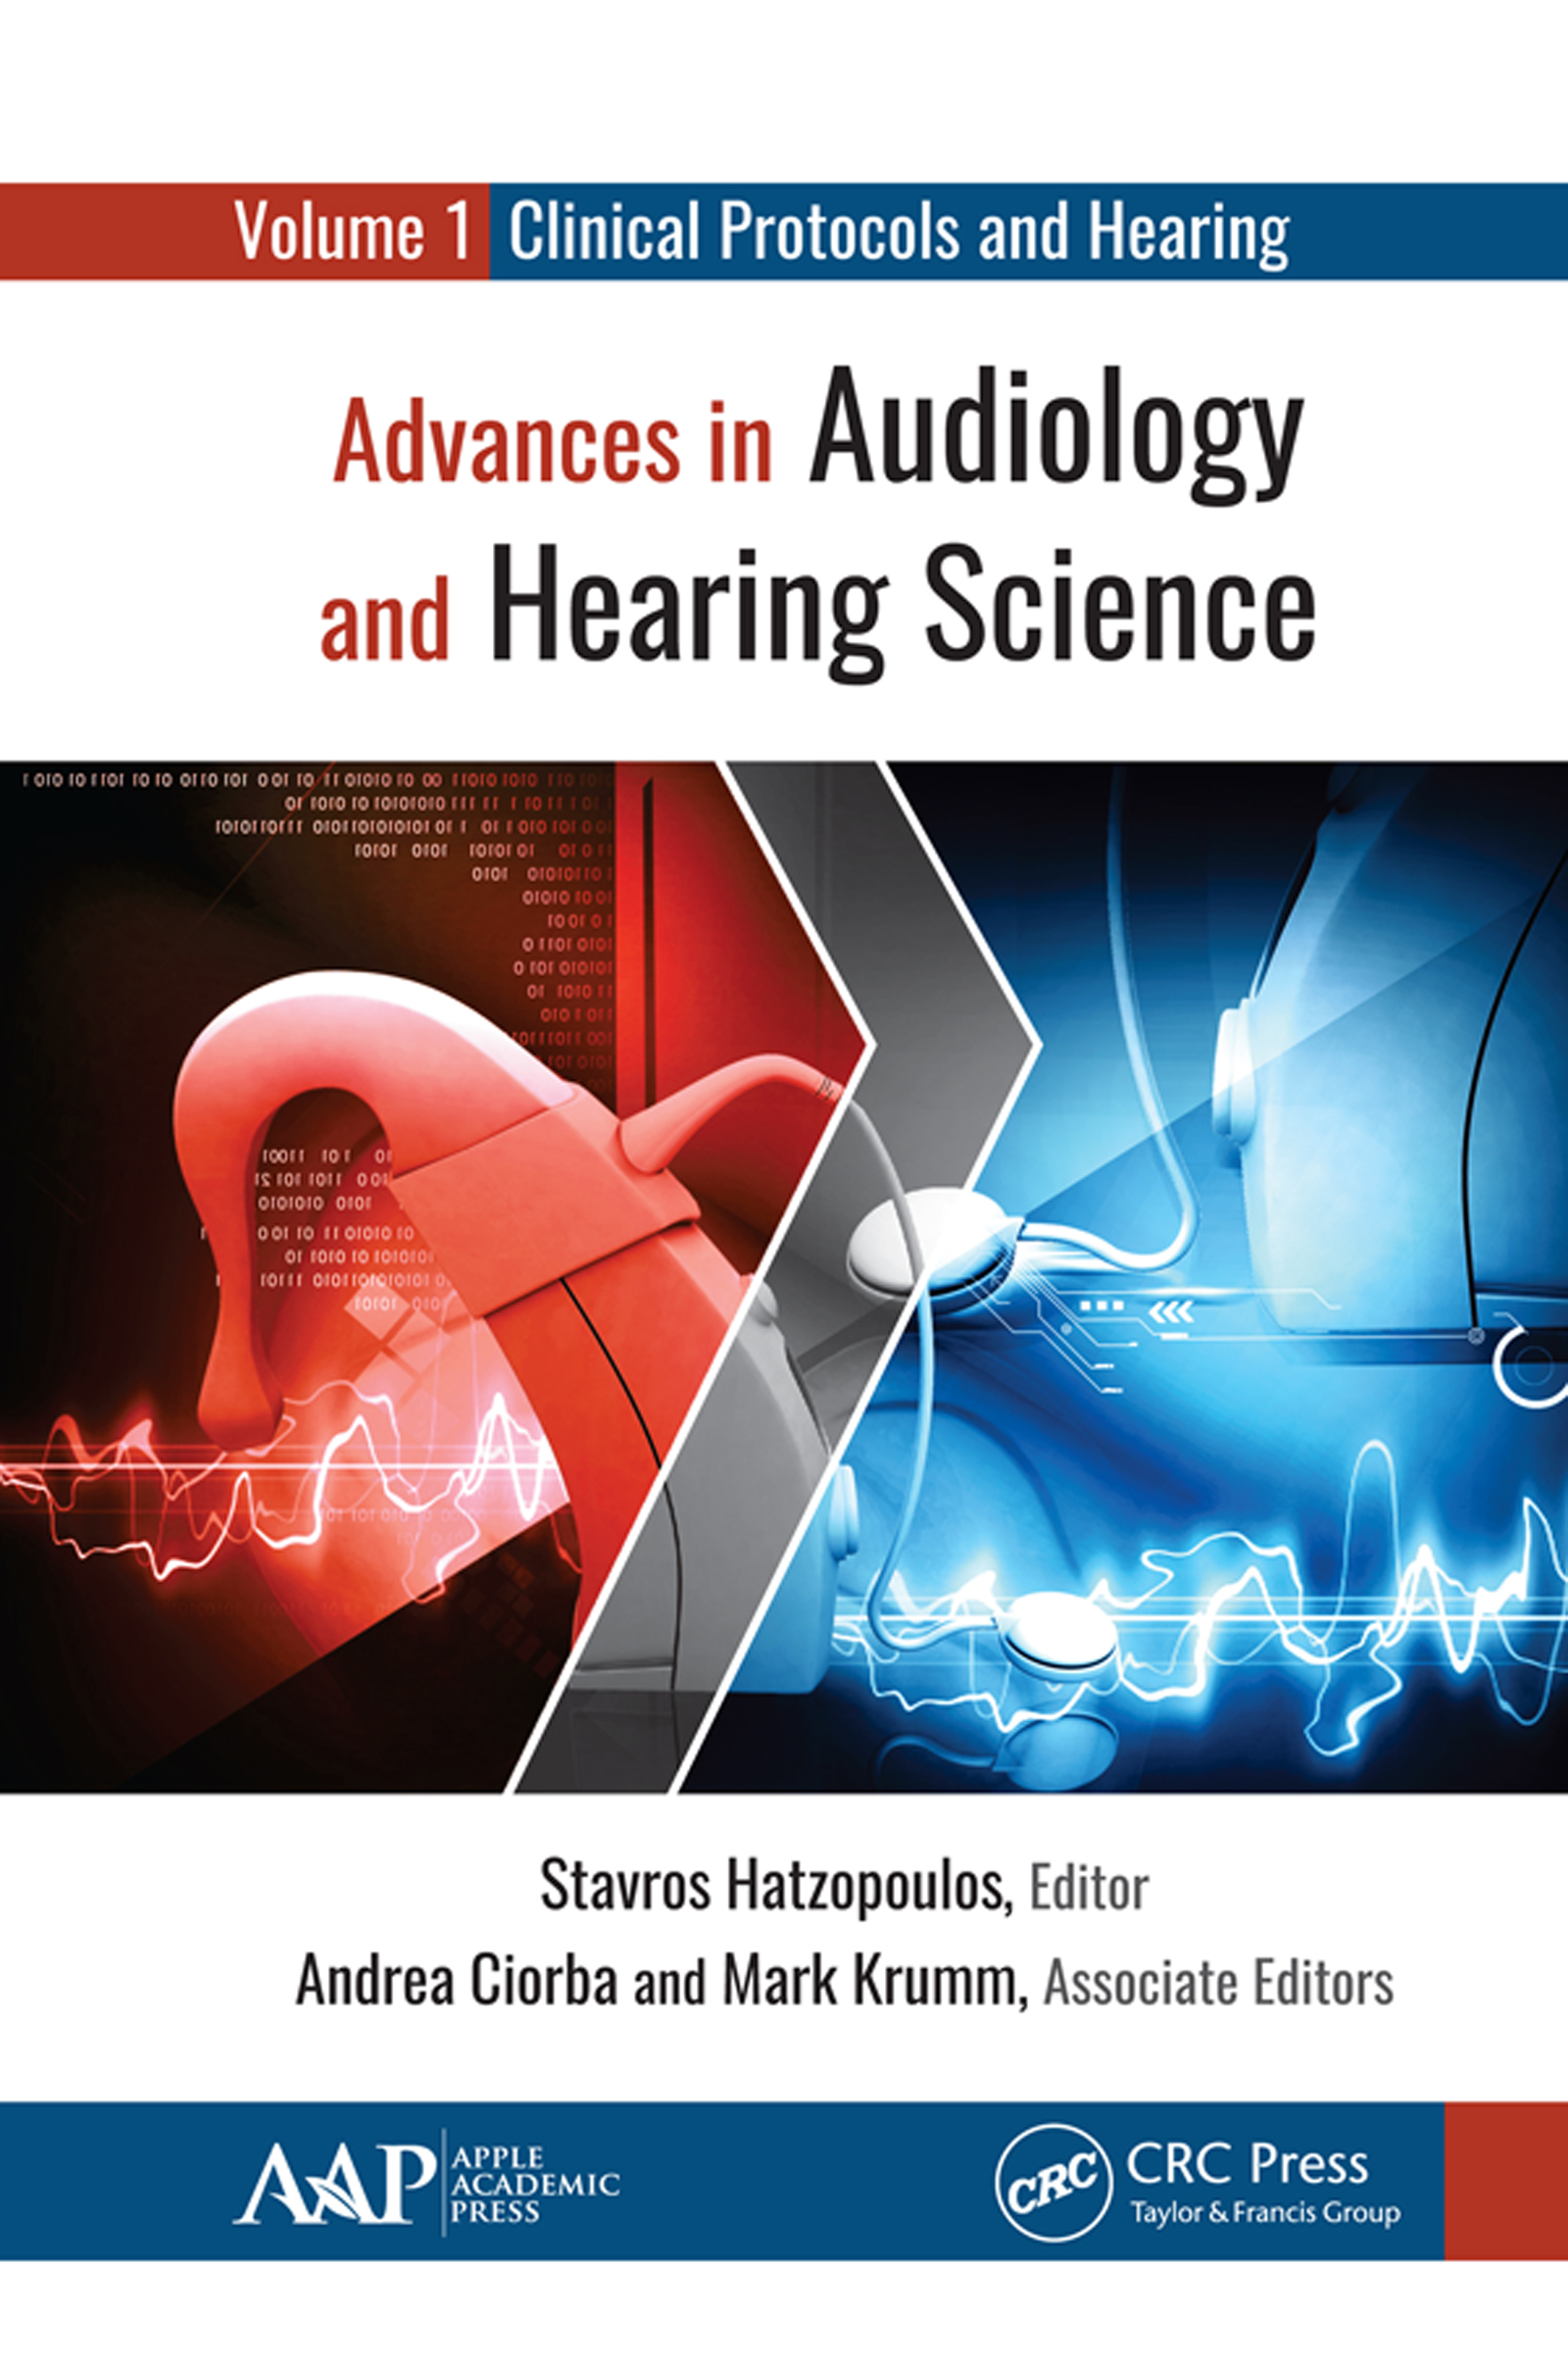 Advances in Audiology and Hearing Science